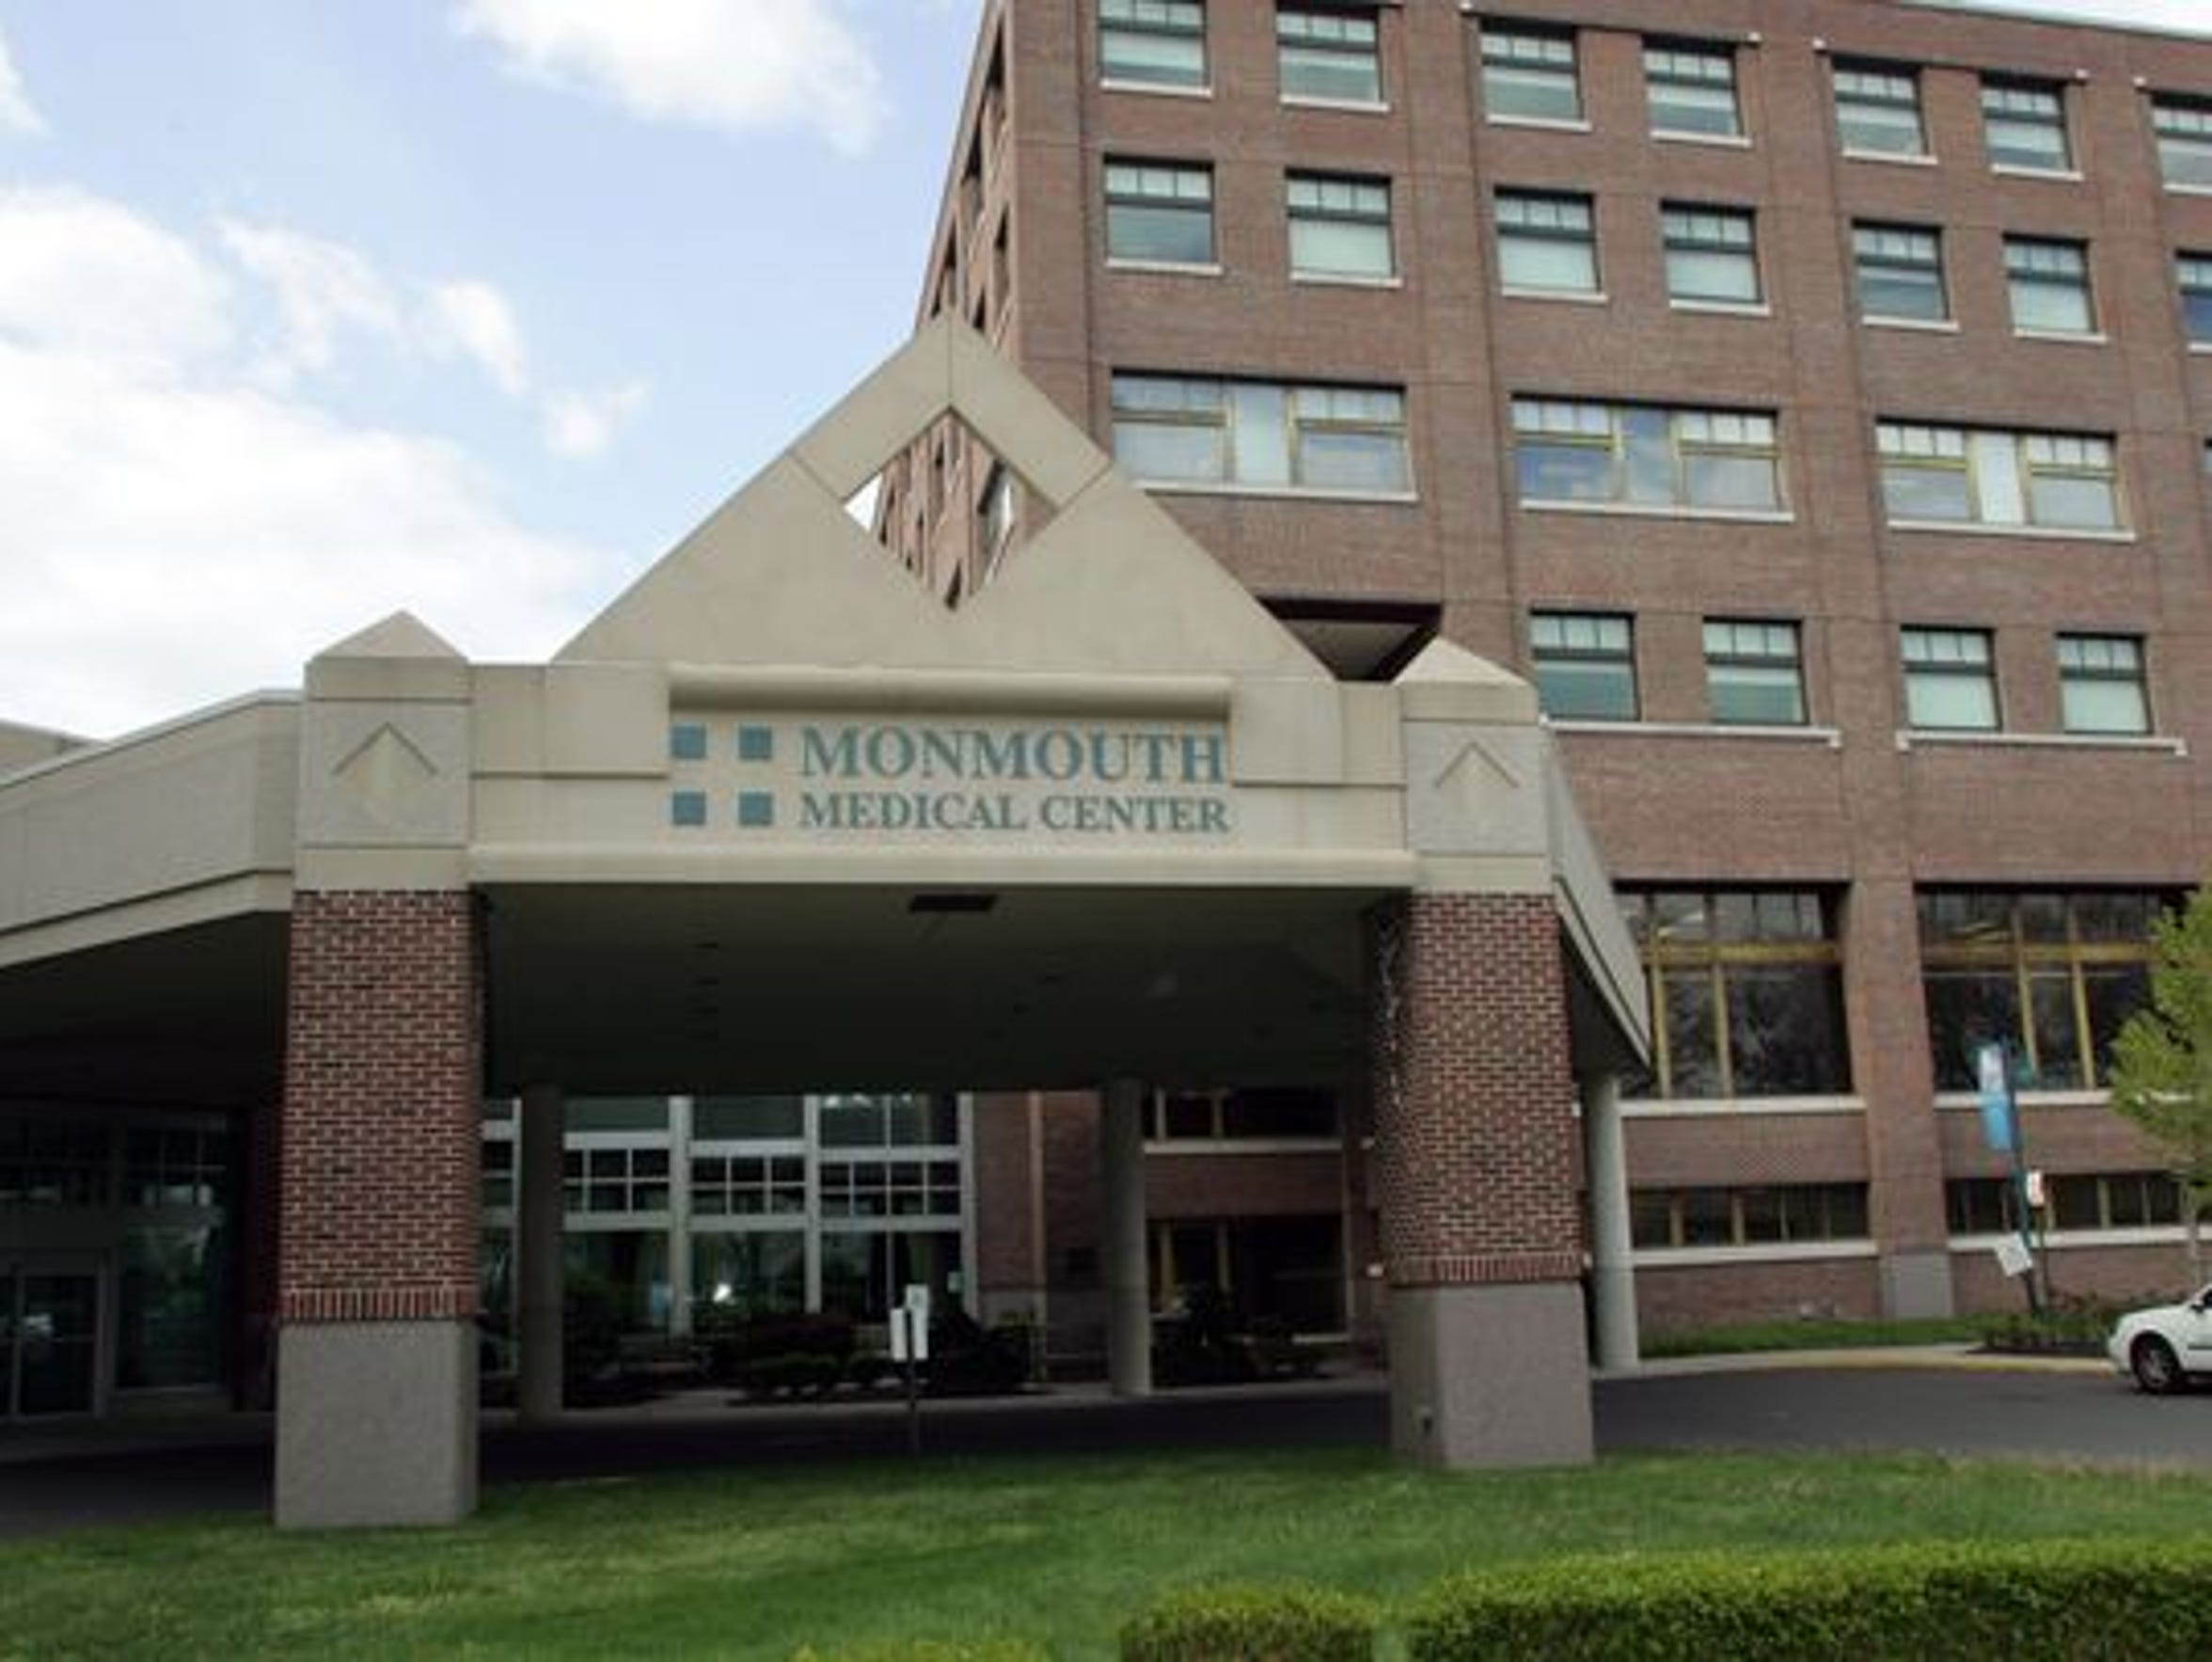 Monmouth Medical Center